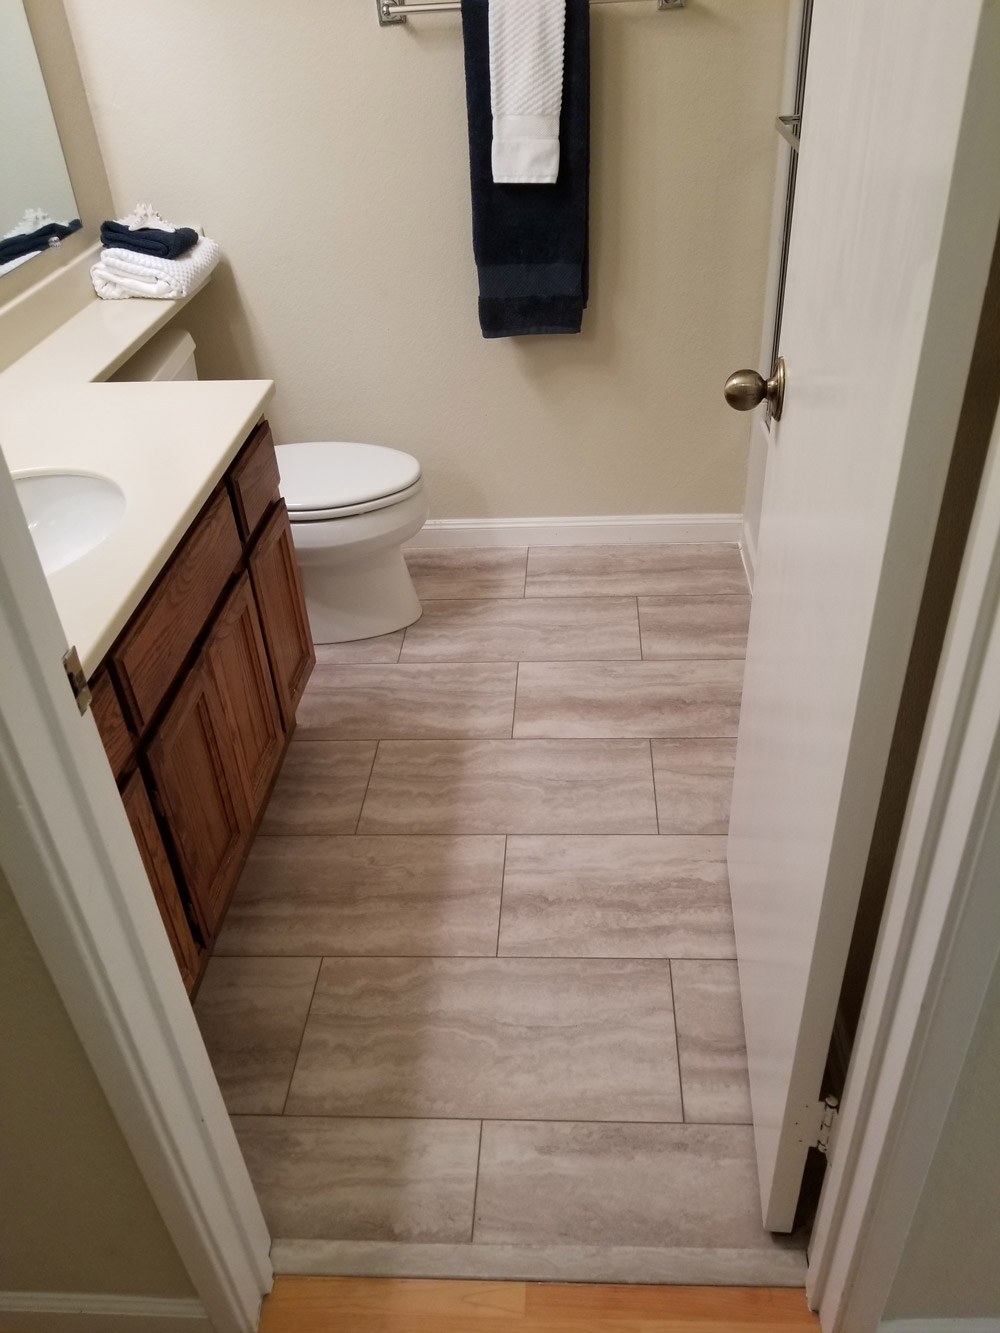 Los Altos,  residential: Waterproof, luxury vinyl tile  (LVT) 28 square feet. Installed in bathroom in one day.